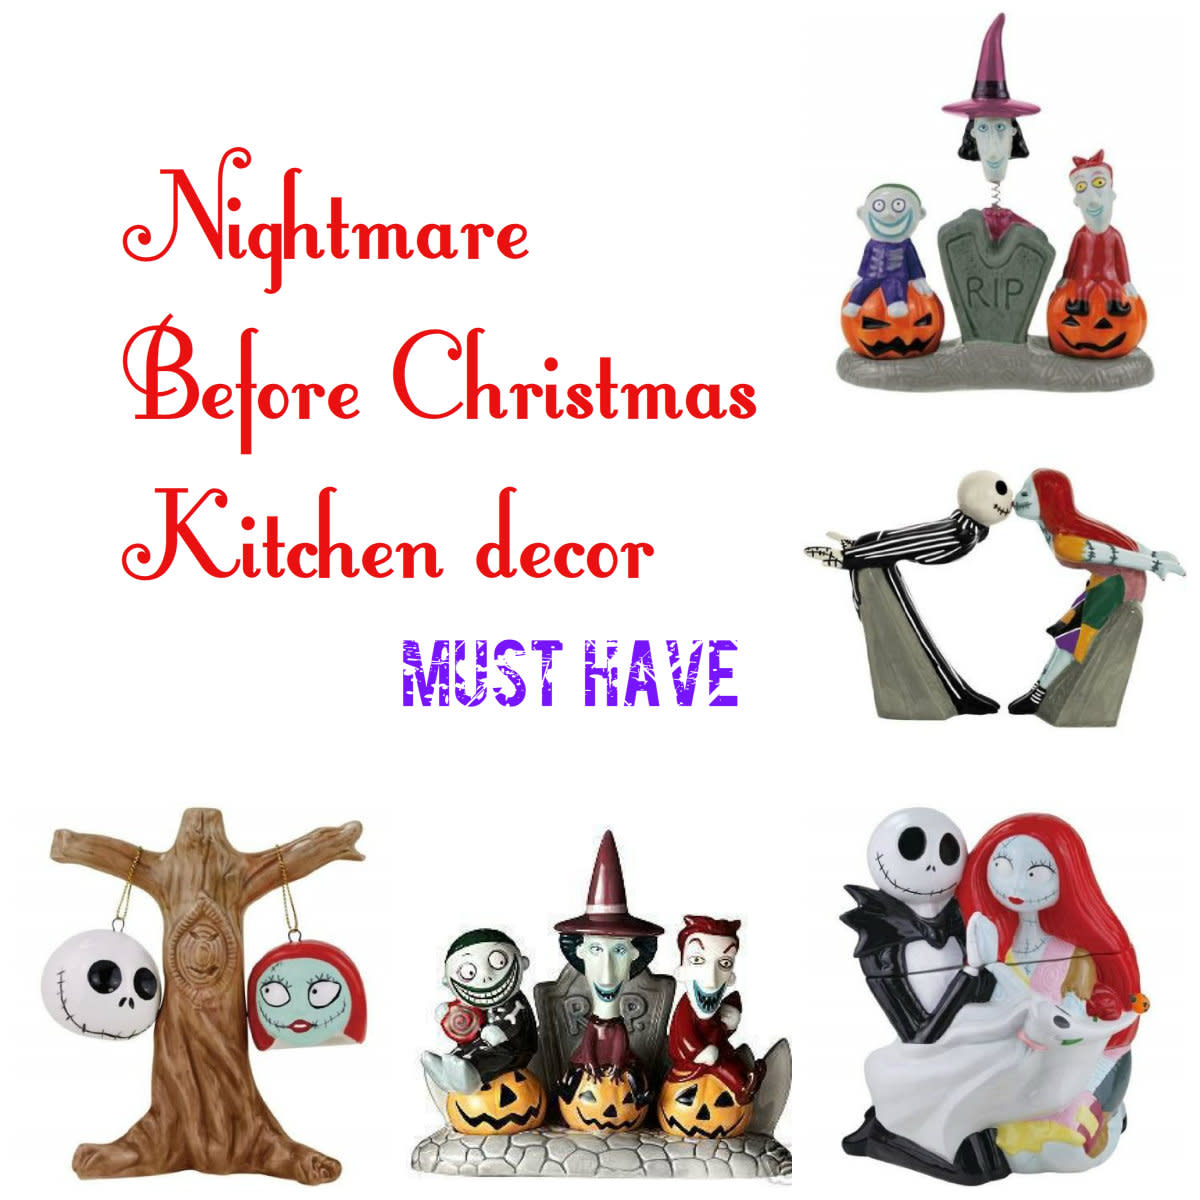 You would love to have these Nightmare Before Christmas Kitchen Décor and Accessories